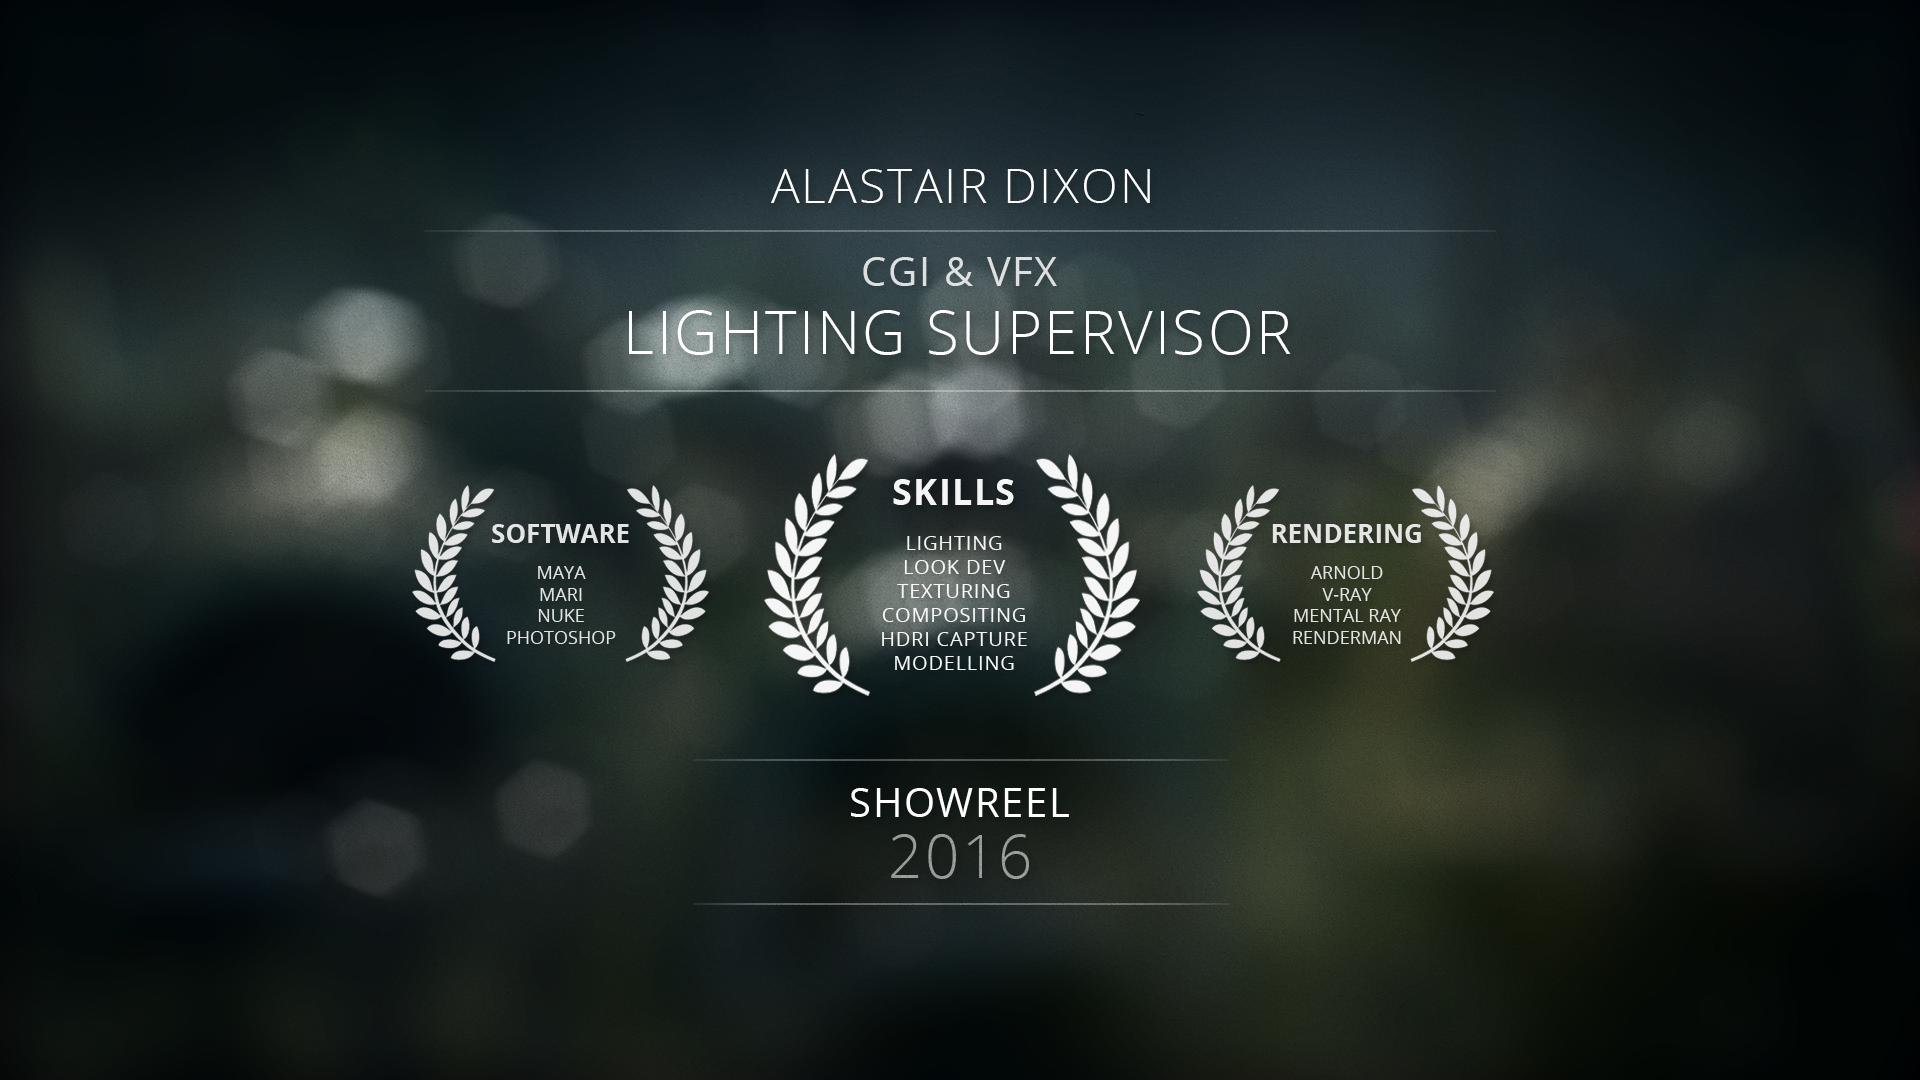 Cgi & vfx portfolio - cgi lighting supervisor / photographer / trailrunner.